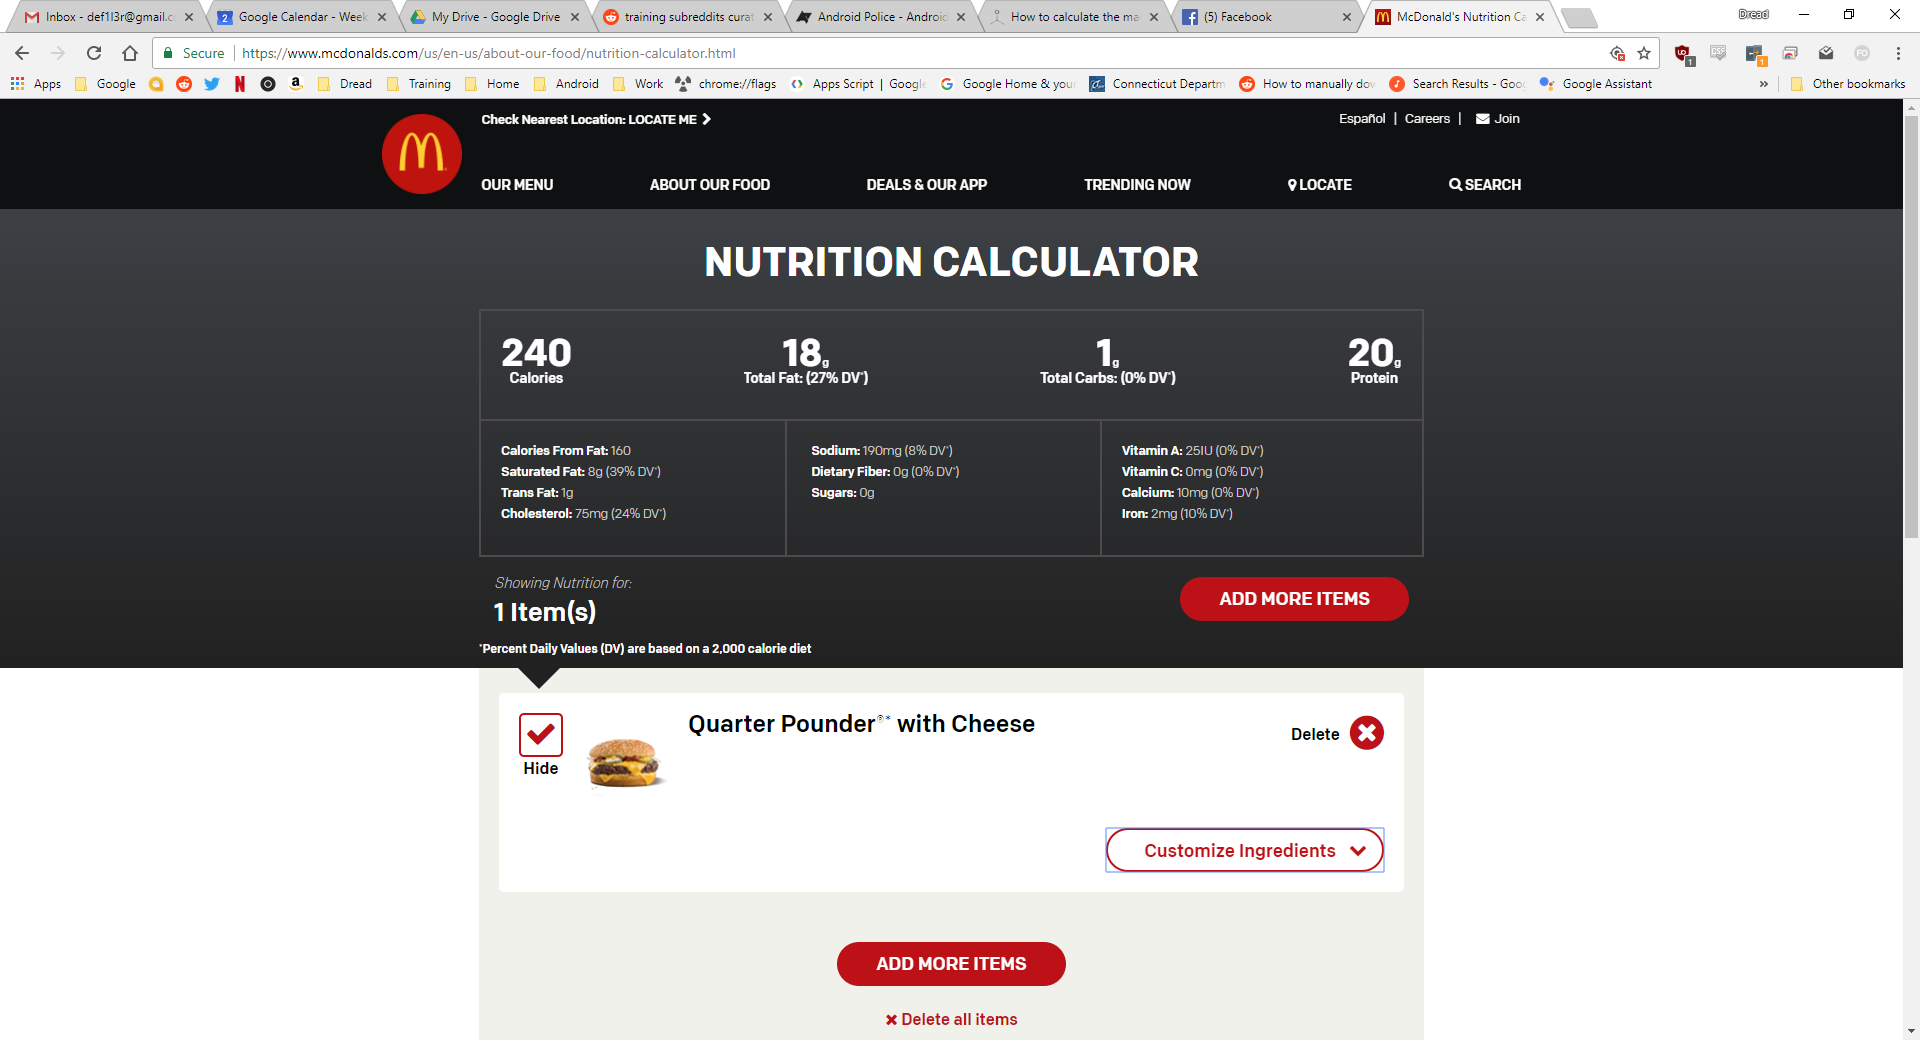 How to calculate the macros for bunless mcdonalds burger? - Food